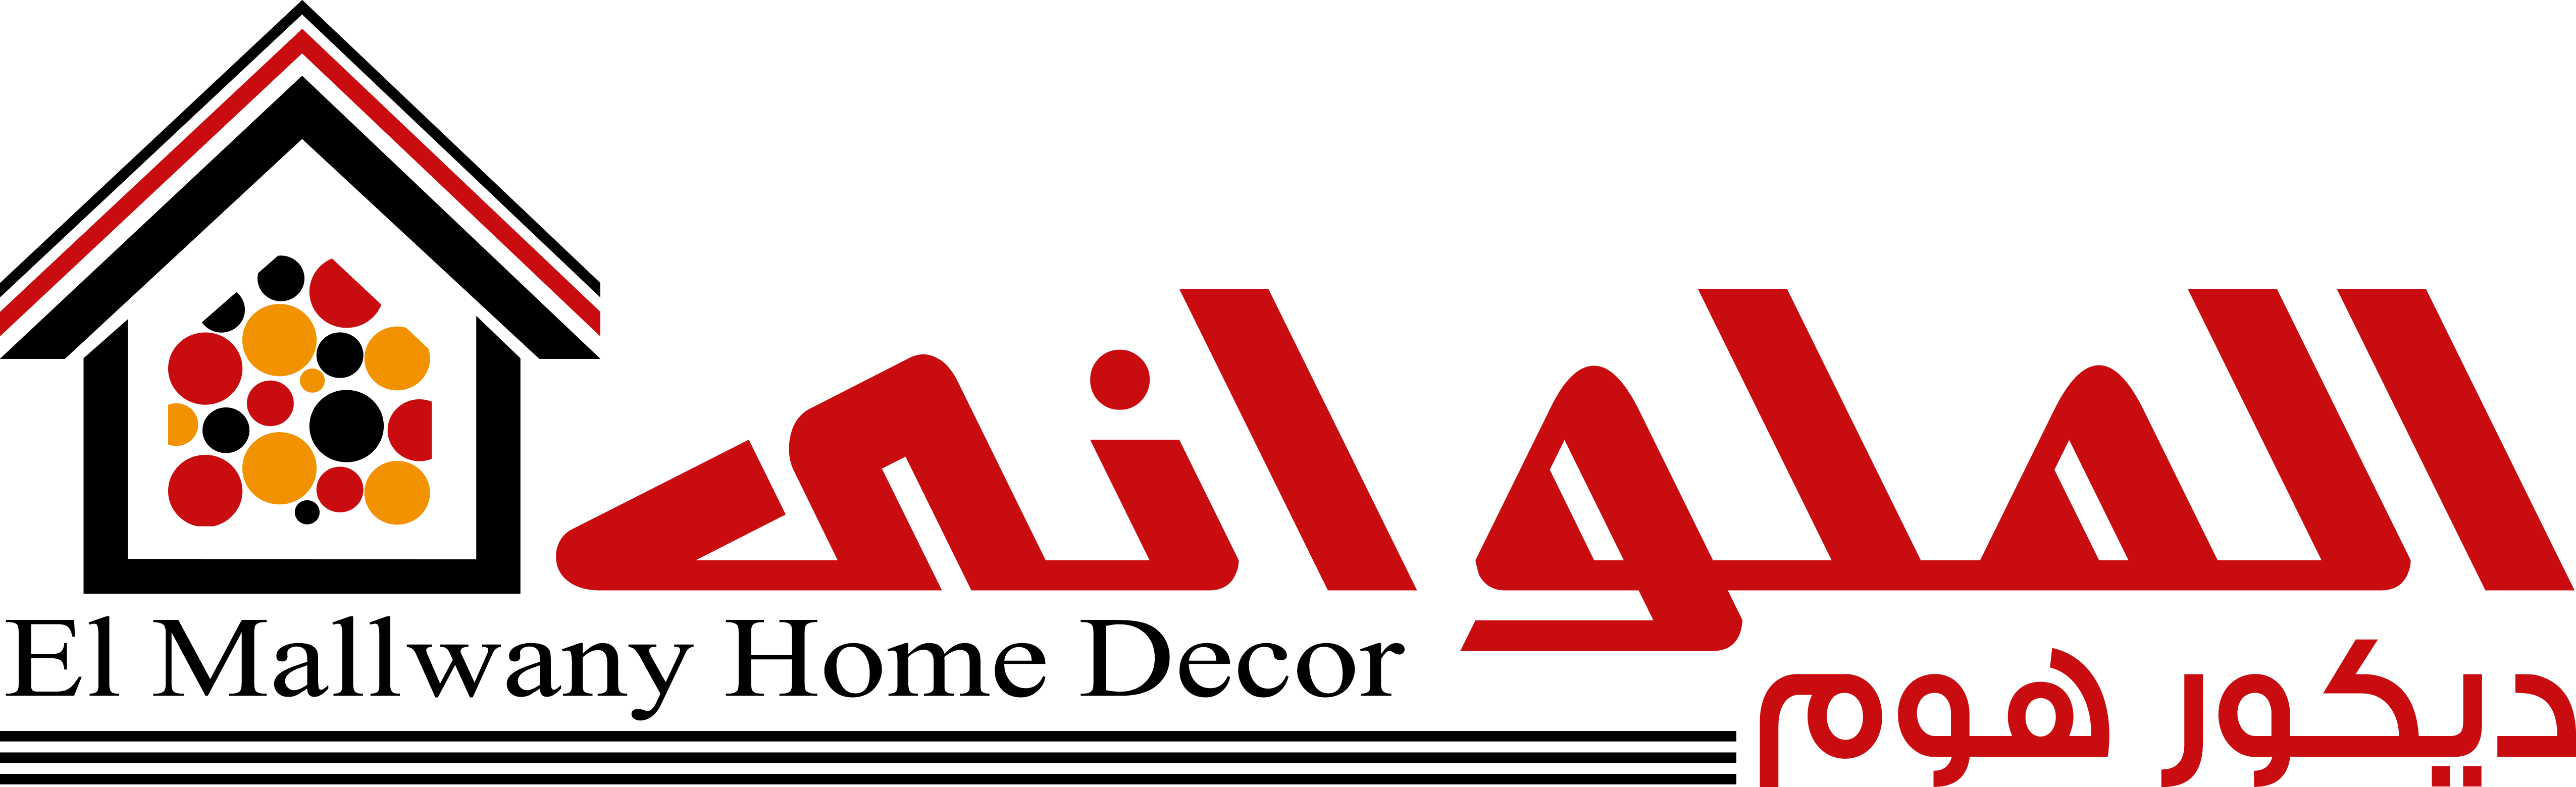 elmallwany |  For decoration and furnishings